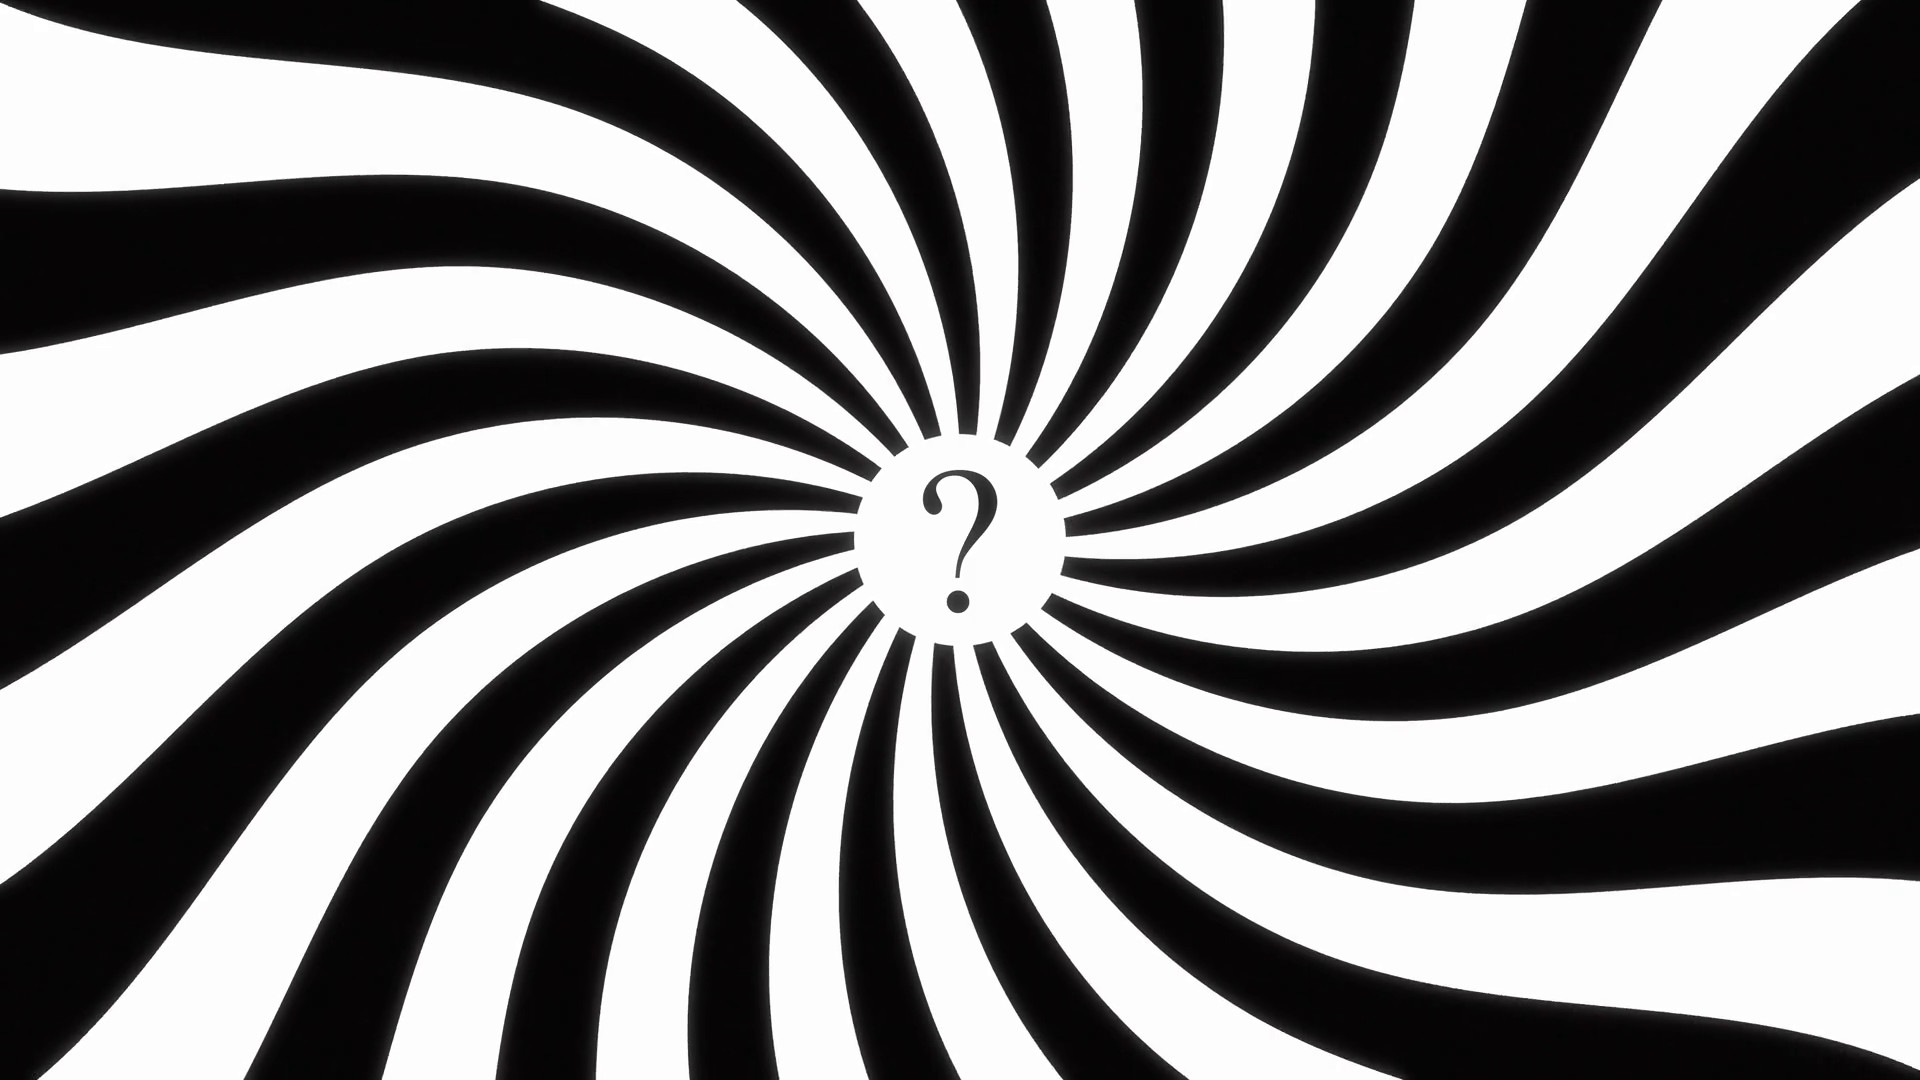 Hypnotic Spiral Dis Question Mark 4k. A 4k animated spiral (hypnotic), with  a question mark at the center. Black and white. Seamless loop.